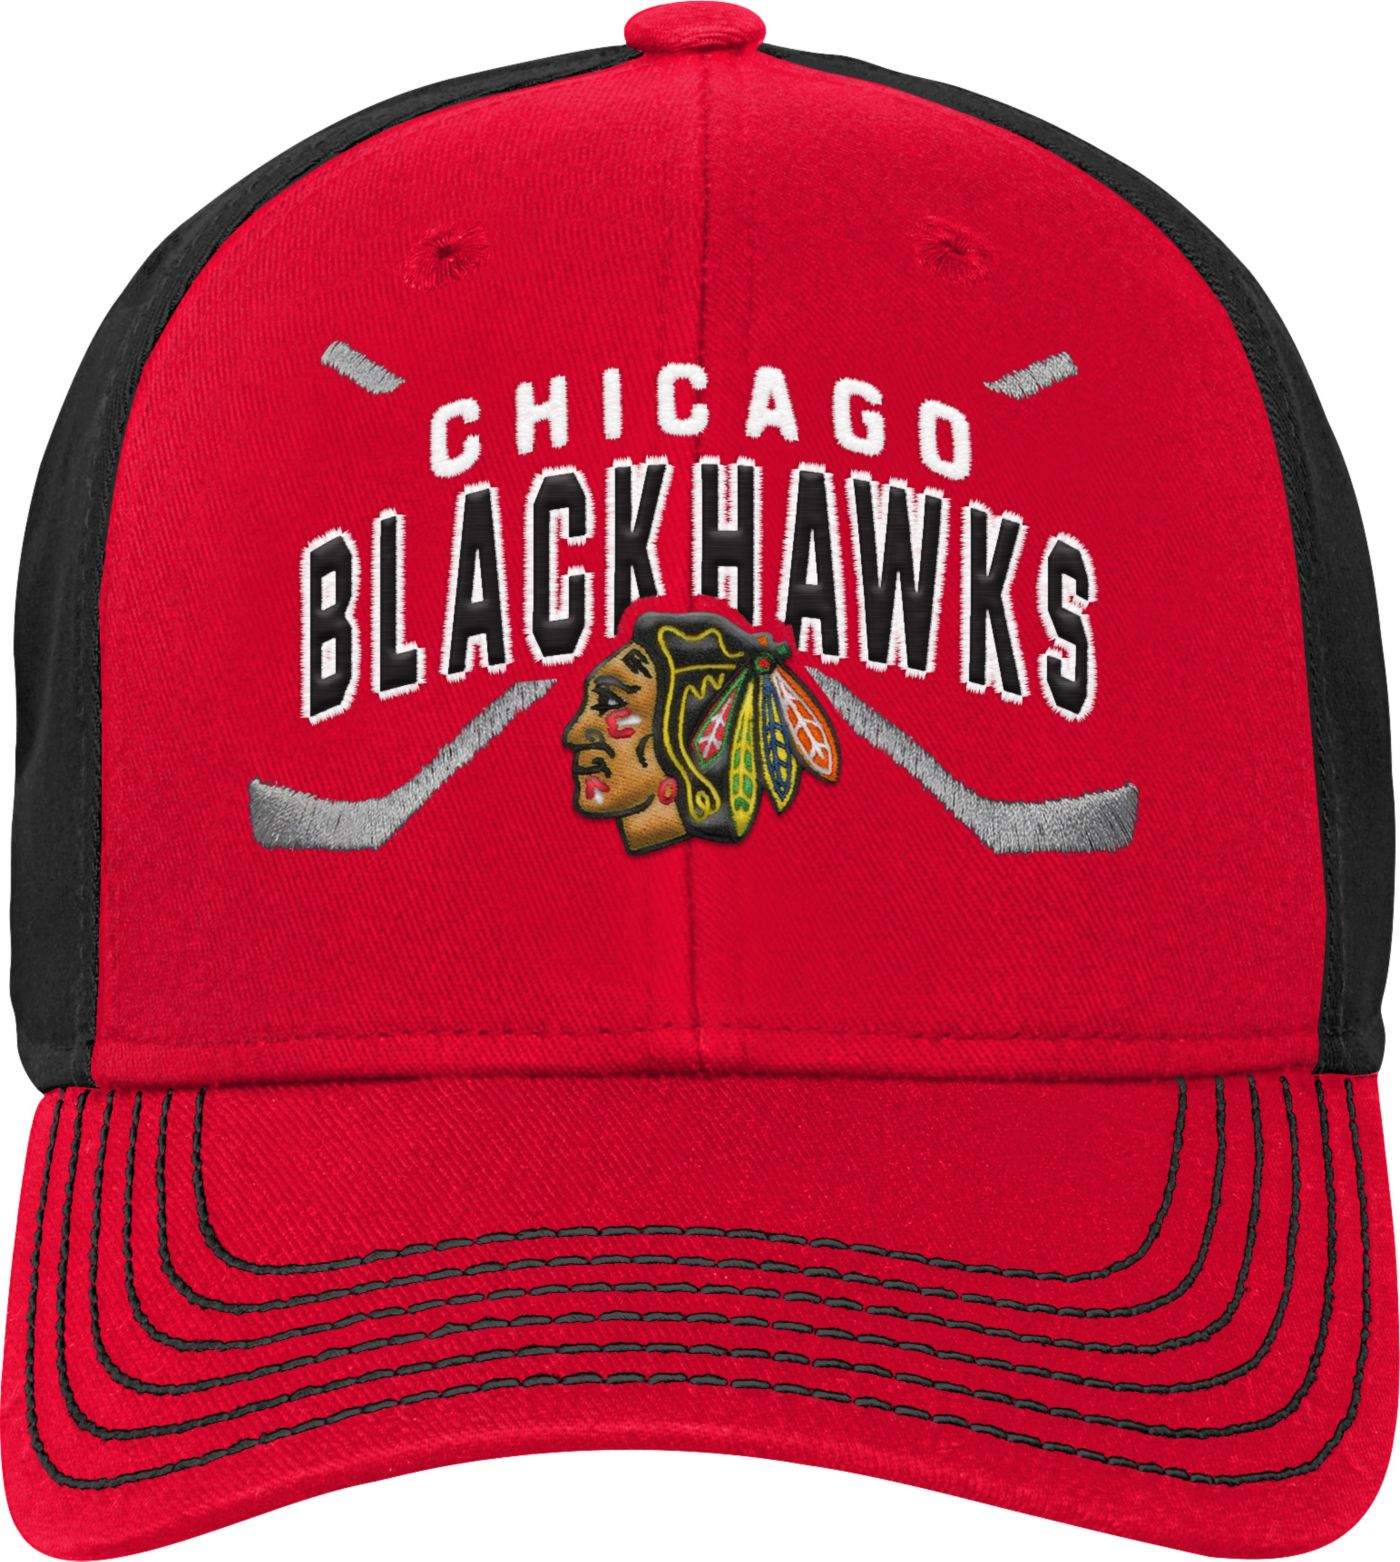 NHL Youth Chicago Blackhawks Basic Strucutred Red Adjustable Hat